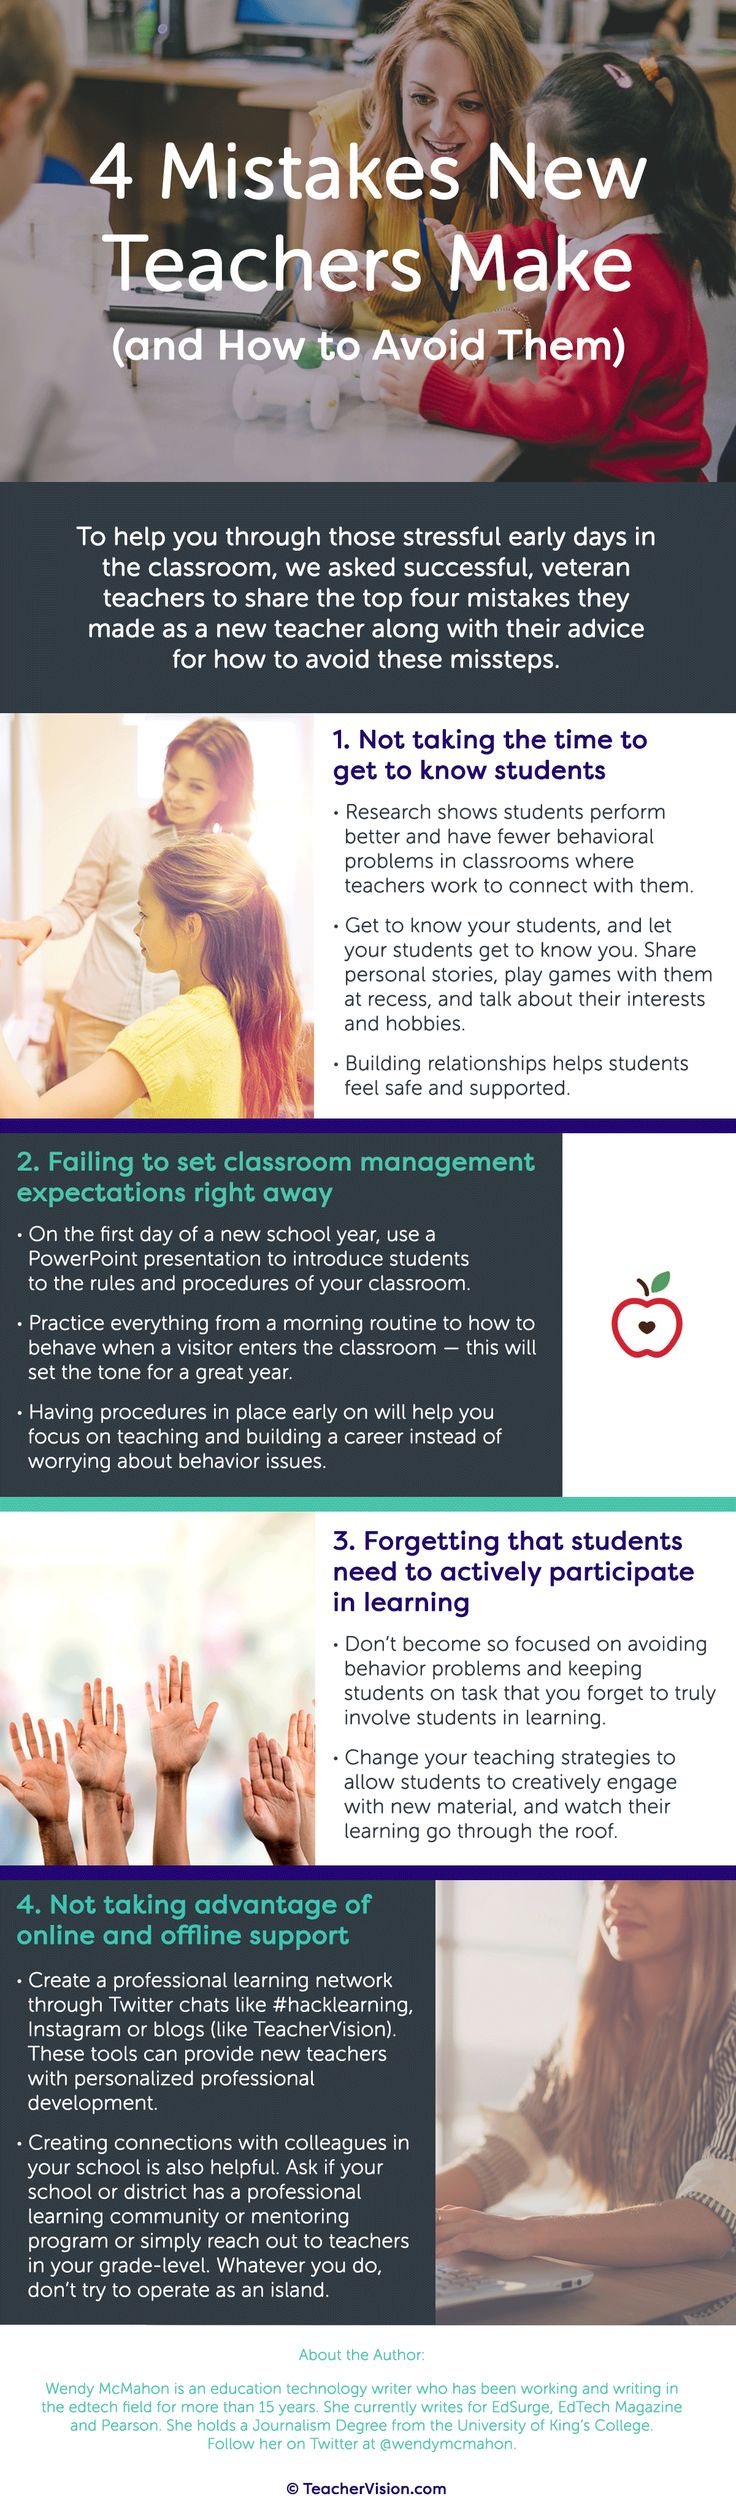 4 Mistakes New Teachers Make (and How to Avoid Them) - Veteran teachers share their advice on how to have a successful first year in the classroom.